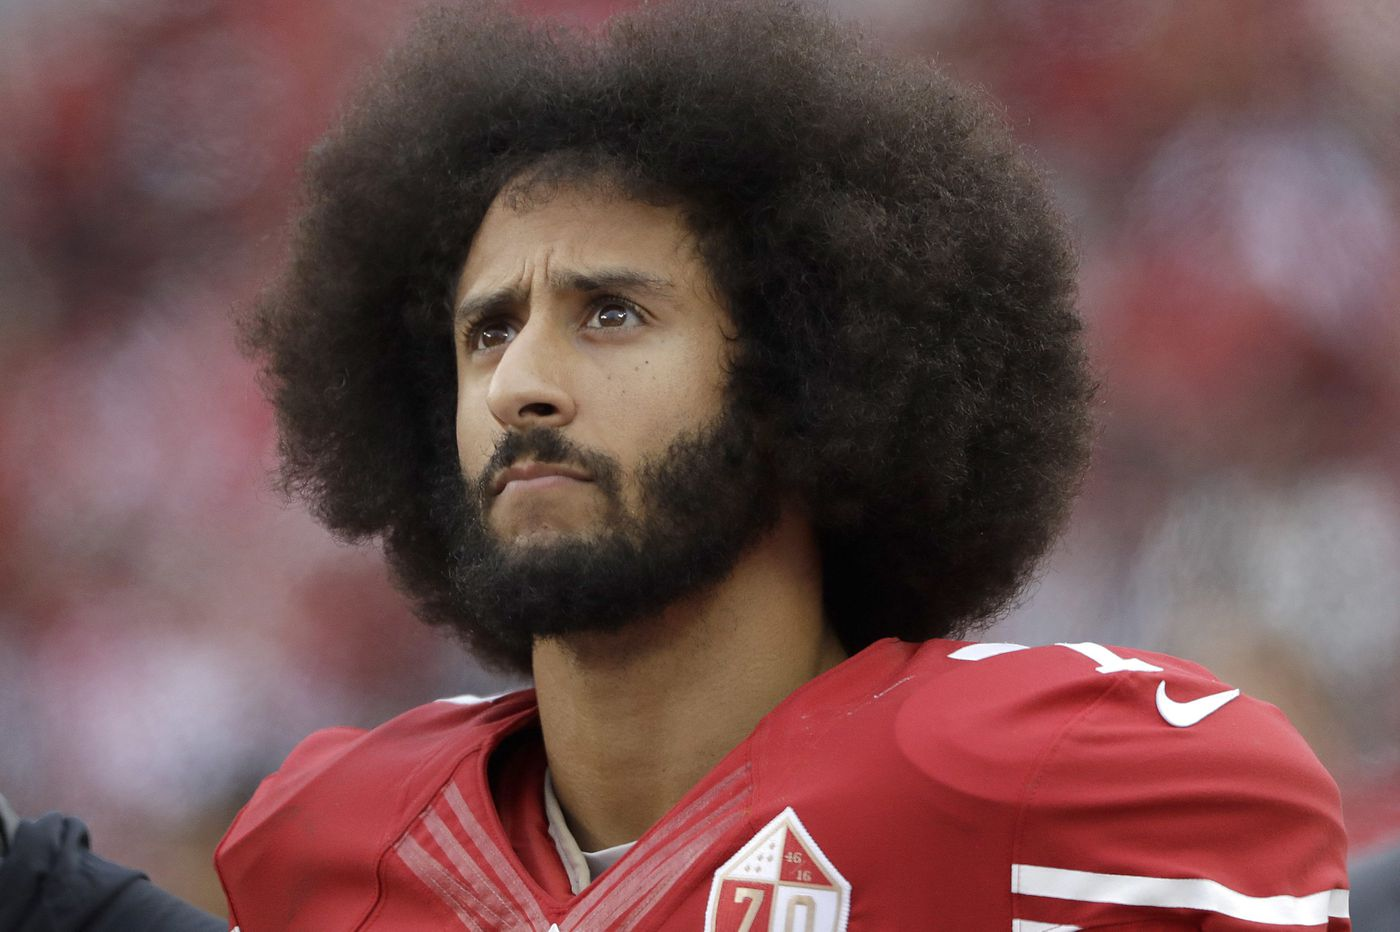 Colin Kaepernick is proof that protest changes America, not just voting | Will Bunch